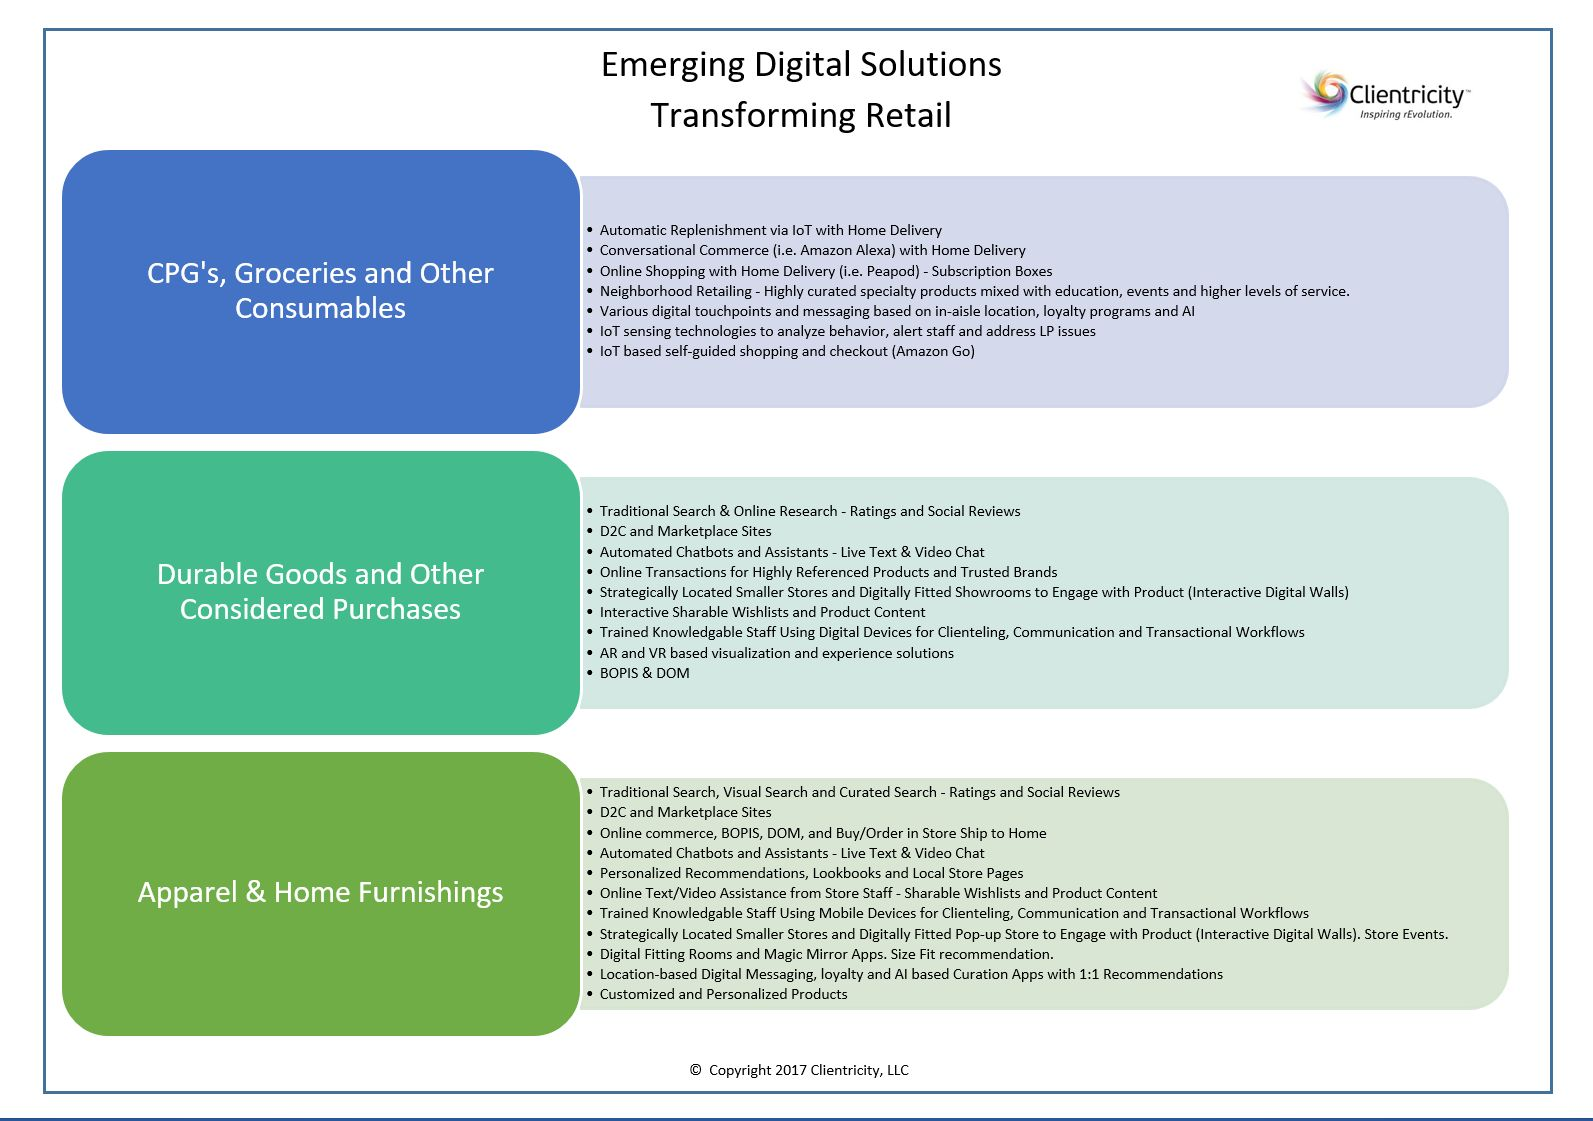 Emerging Digital Solutions Image